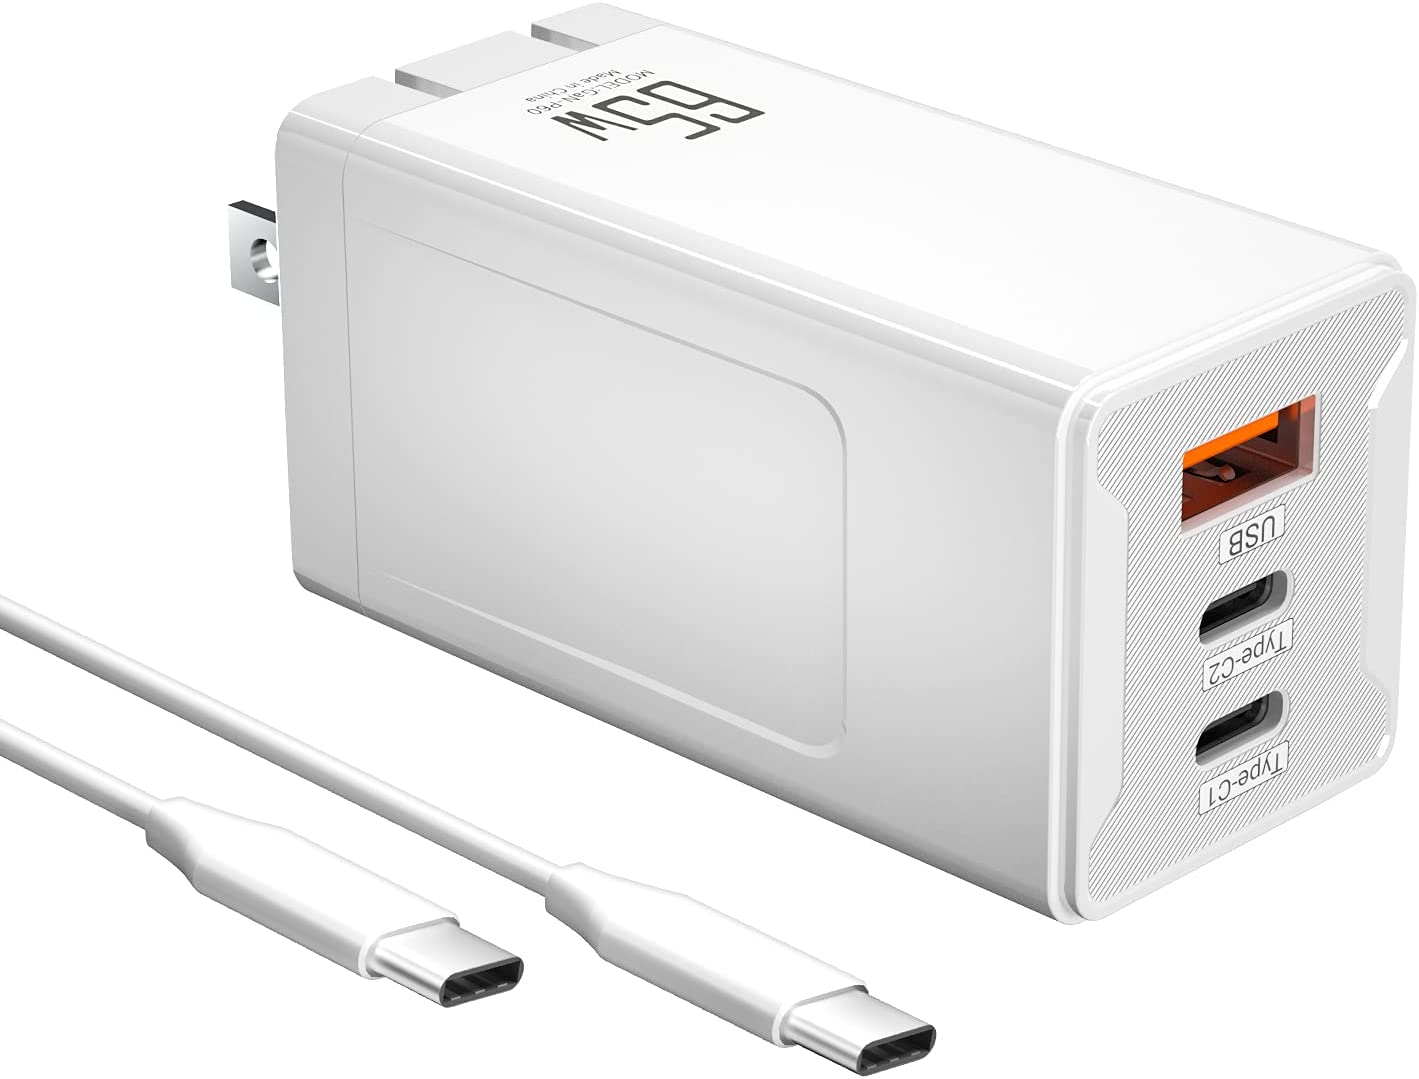 USB C Charger, 65W 3-Port Foldable Fast Wall Charger Block with PD3.0 Protocol and GaNFast Technology for iPhone 12/12 Mini/12 Pro, SE, MacBook Pro, iPad, AirPods Pro, Pixel 4XL, Galaxy S10